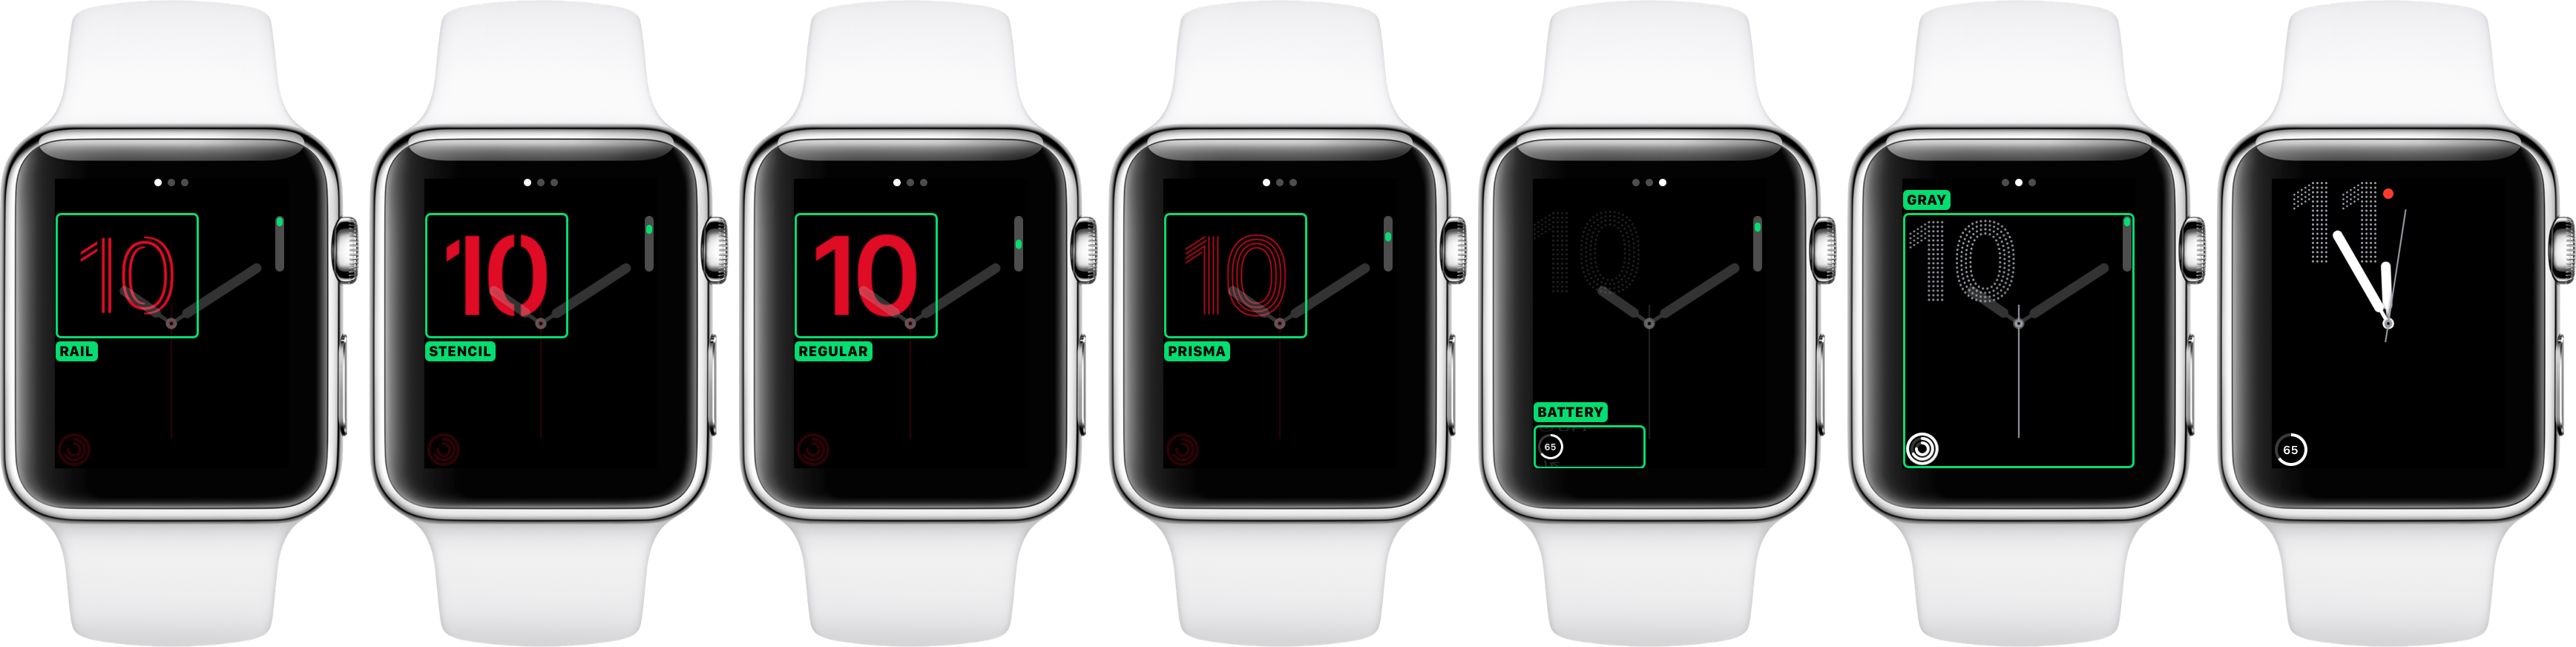 watchOS 3 faces Numerals silver Apple Watch screenshot 001